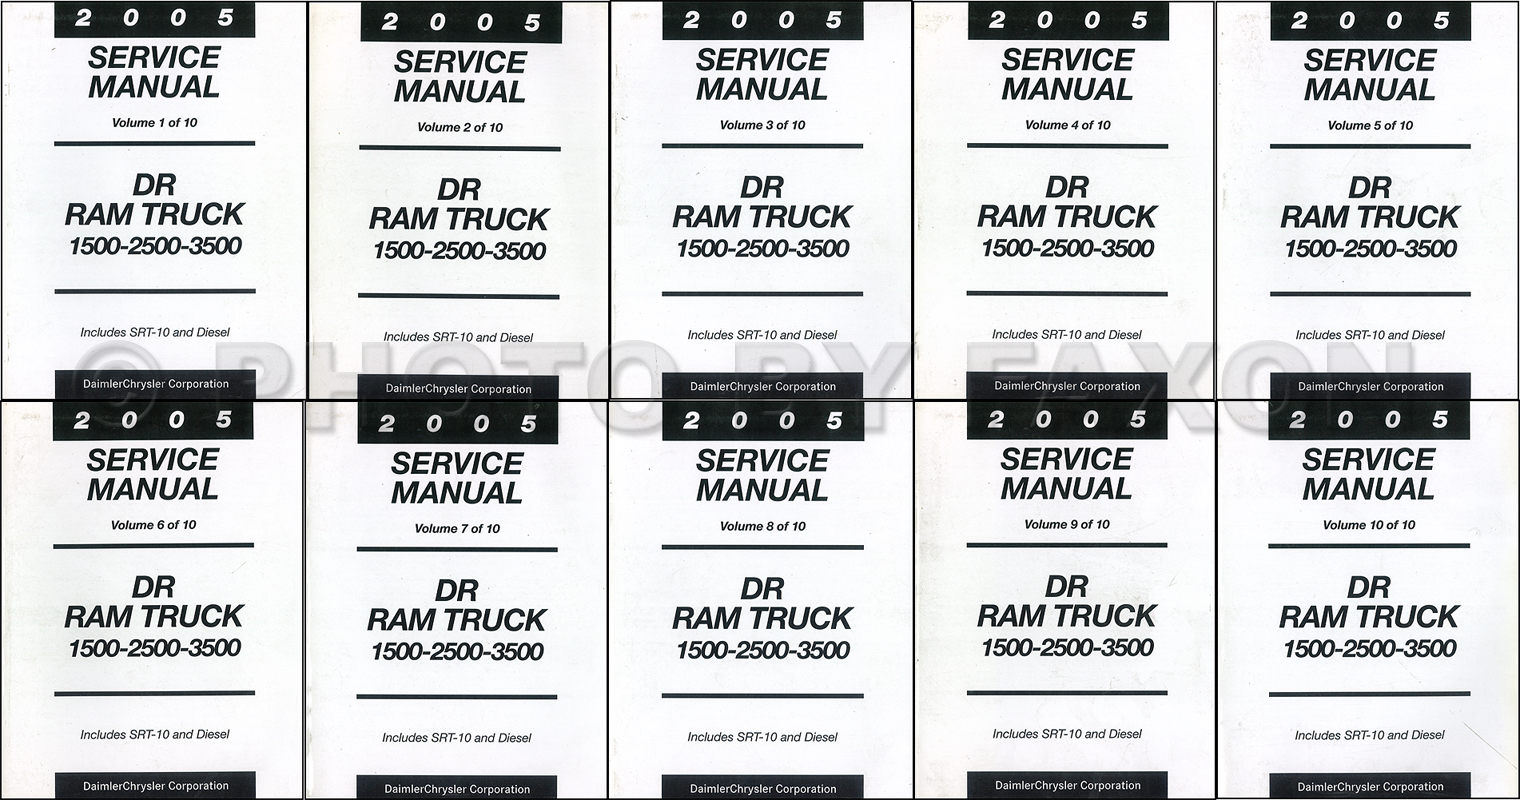 2005DodgeRamTruck1500 3500FRRMSet 2005 dodge ram truck repair shop manual 10 vol set factory 2005 dodge ram wiring diagram at gsmportal.co